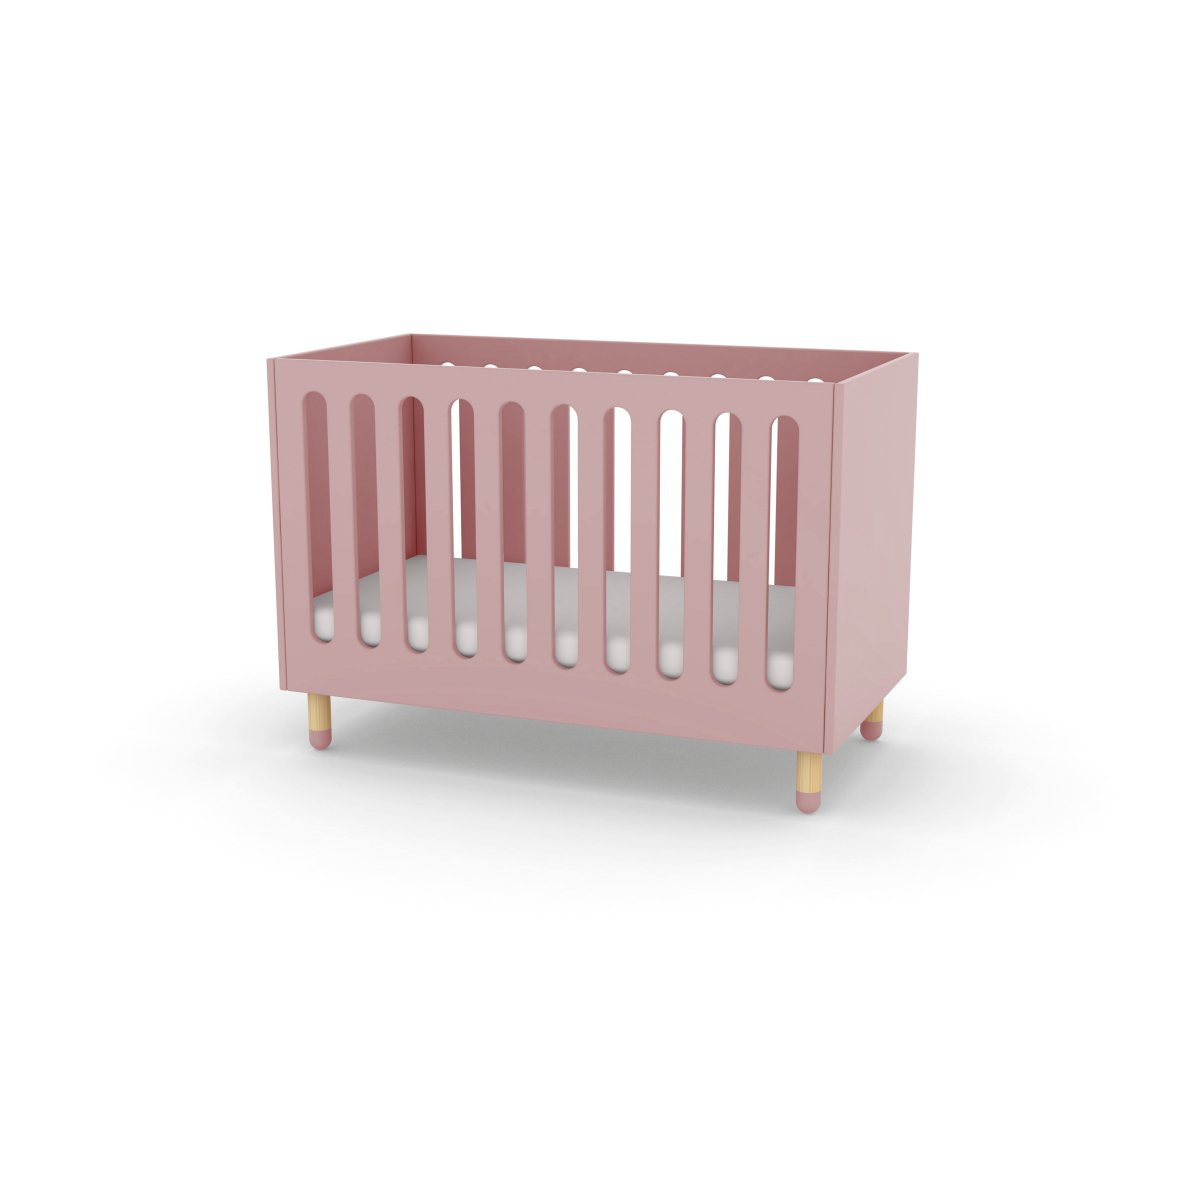 Kinderbett 120x60 Flexa Play Kinderbett Babybett In 60x120 Cm Rosa 407